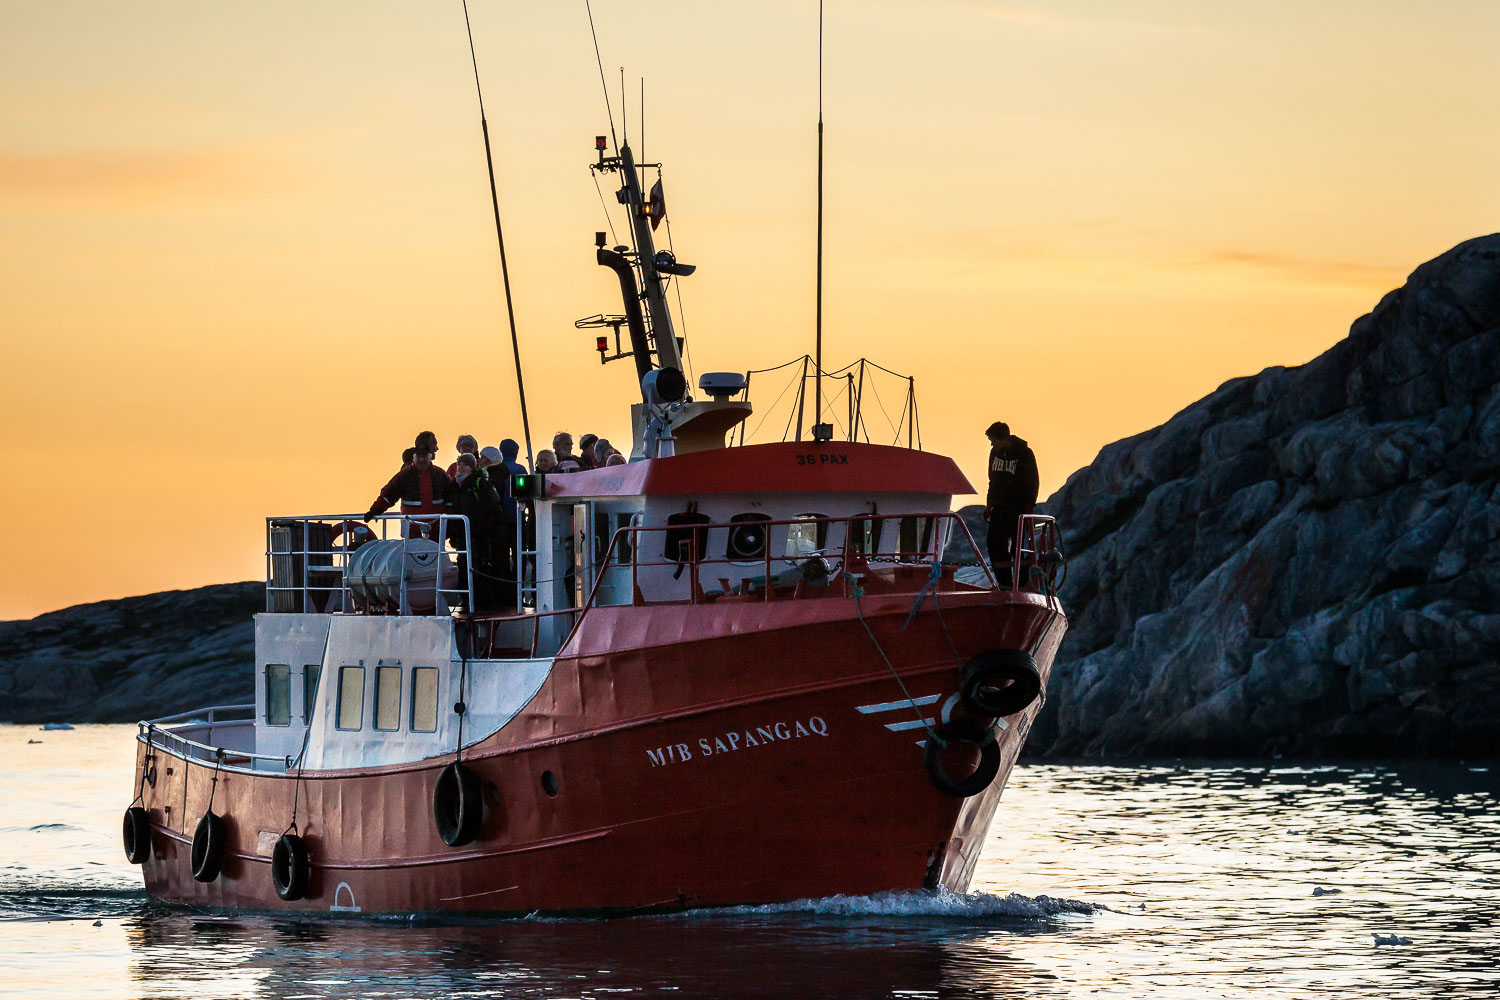 A ship brings passengers back to harbour at the end of a fabulous cruise exploring the Ilulissat Icefjord under the midnight sun near Ilulissat, Greenland.